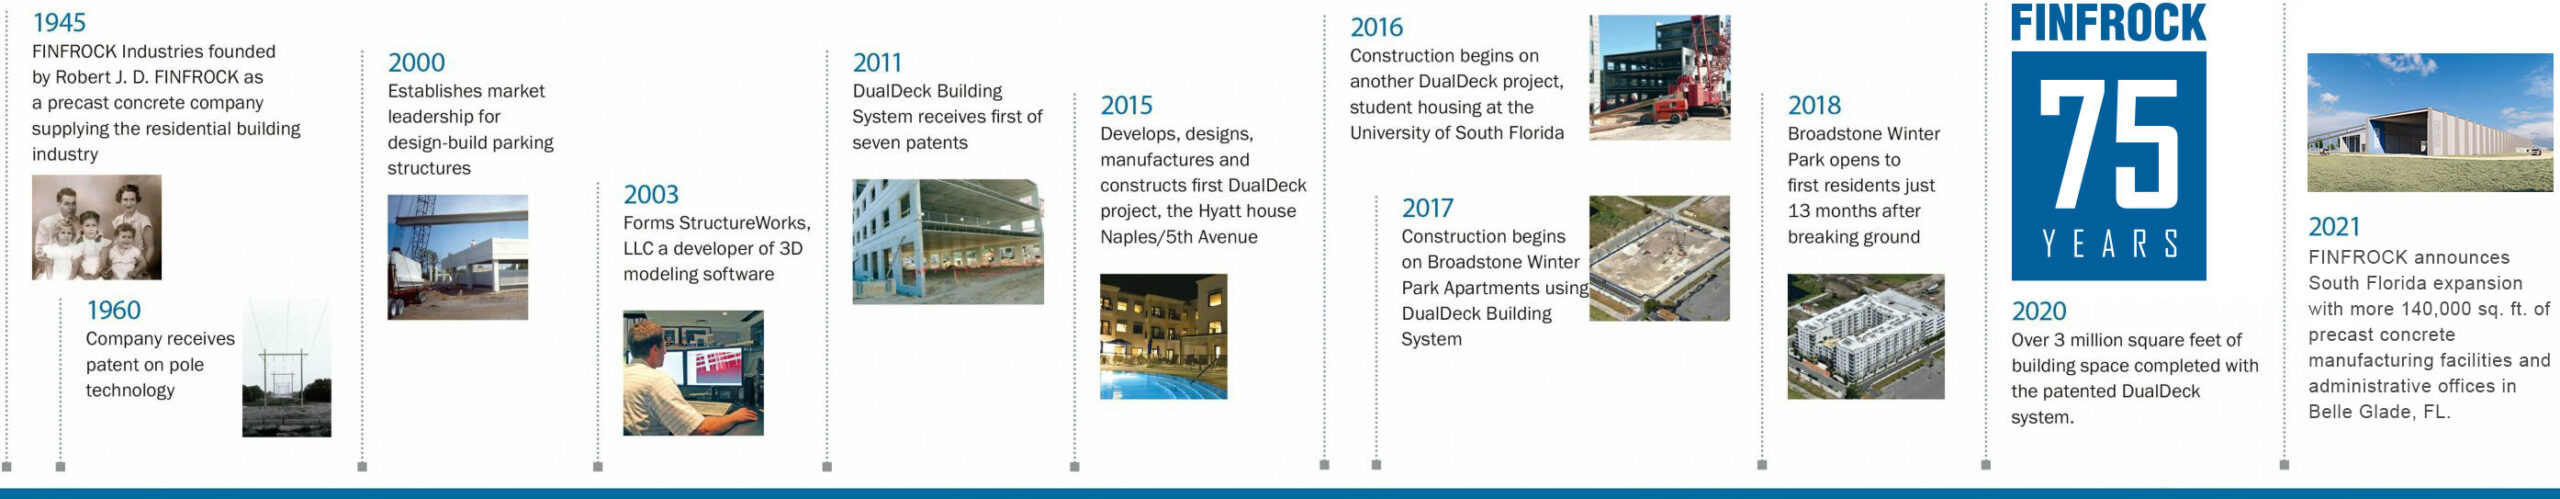 75 year timeline for FINFROCK